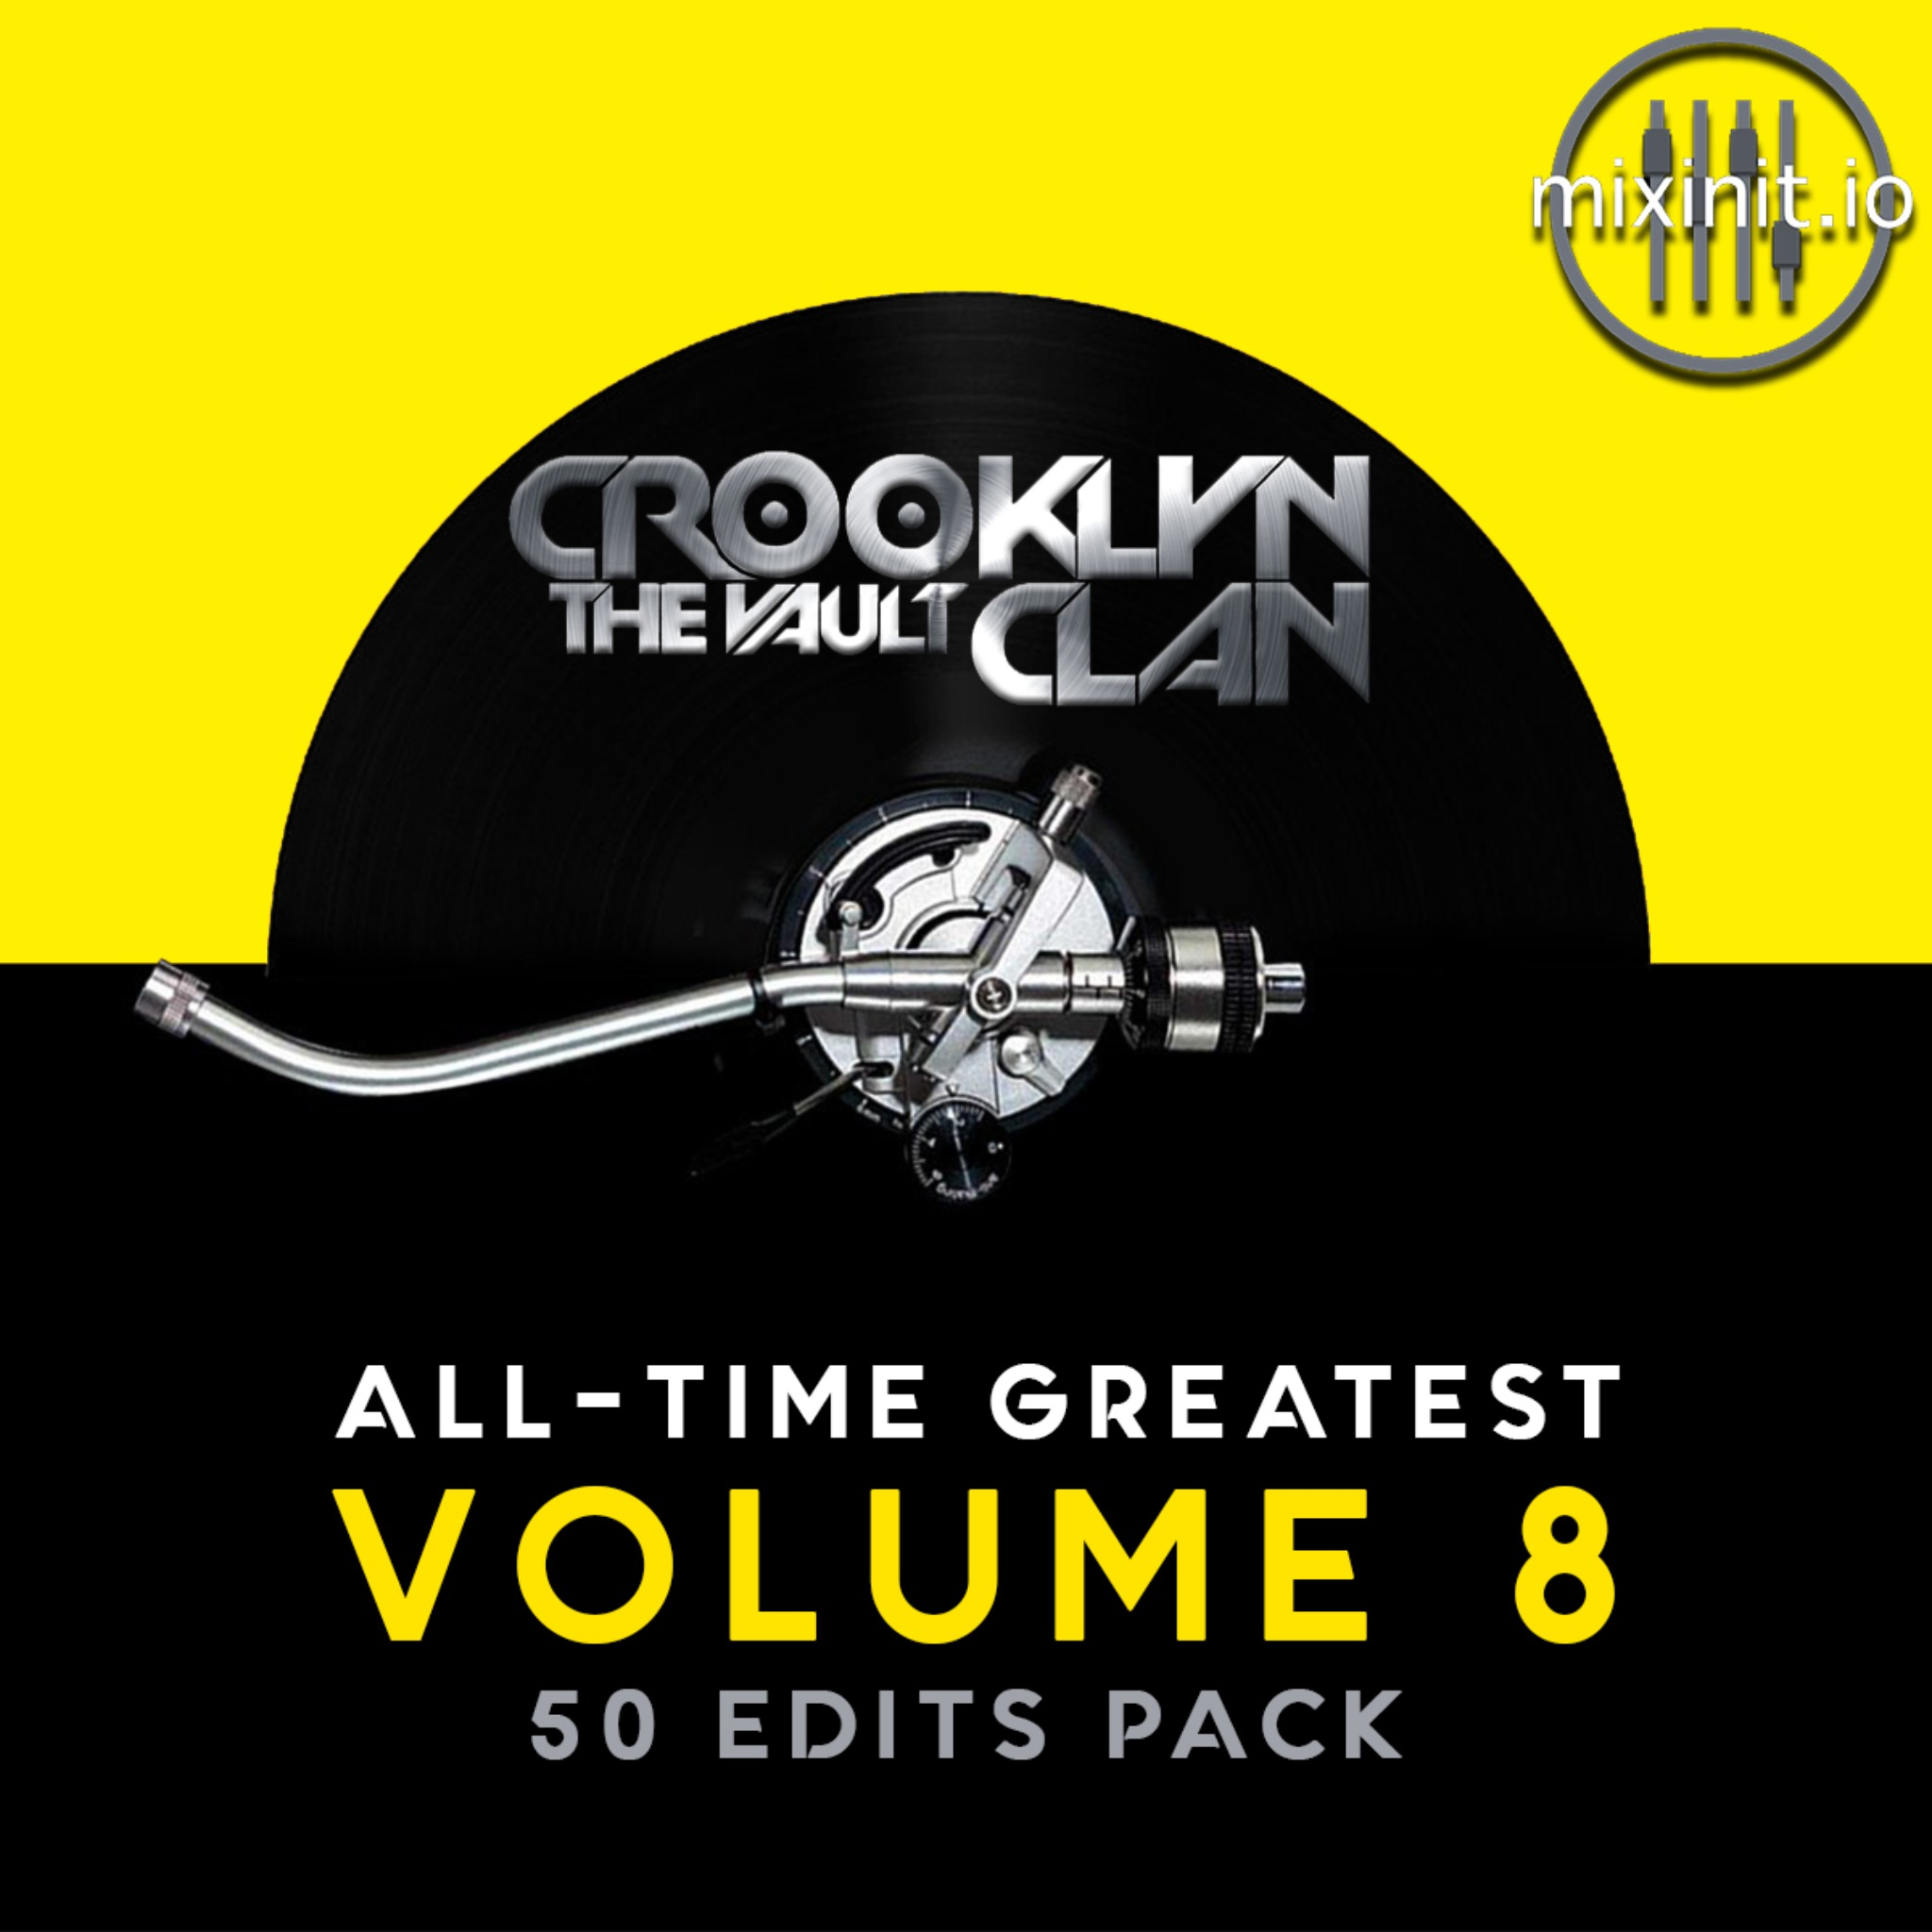 Best Of The Crooklyn Clan Vault Vol. 8 (Various Editors)